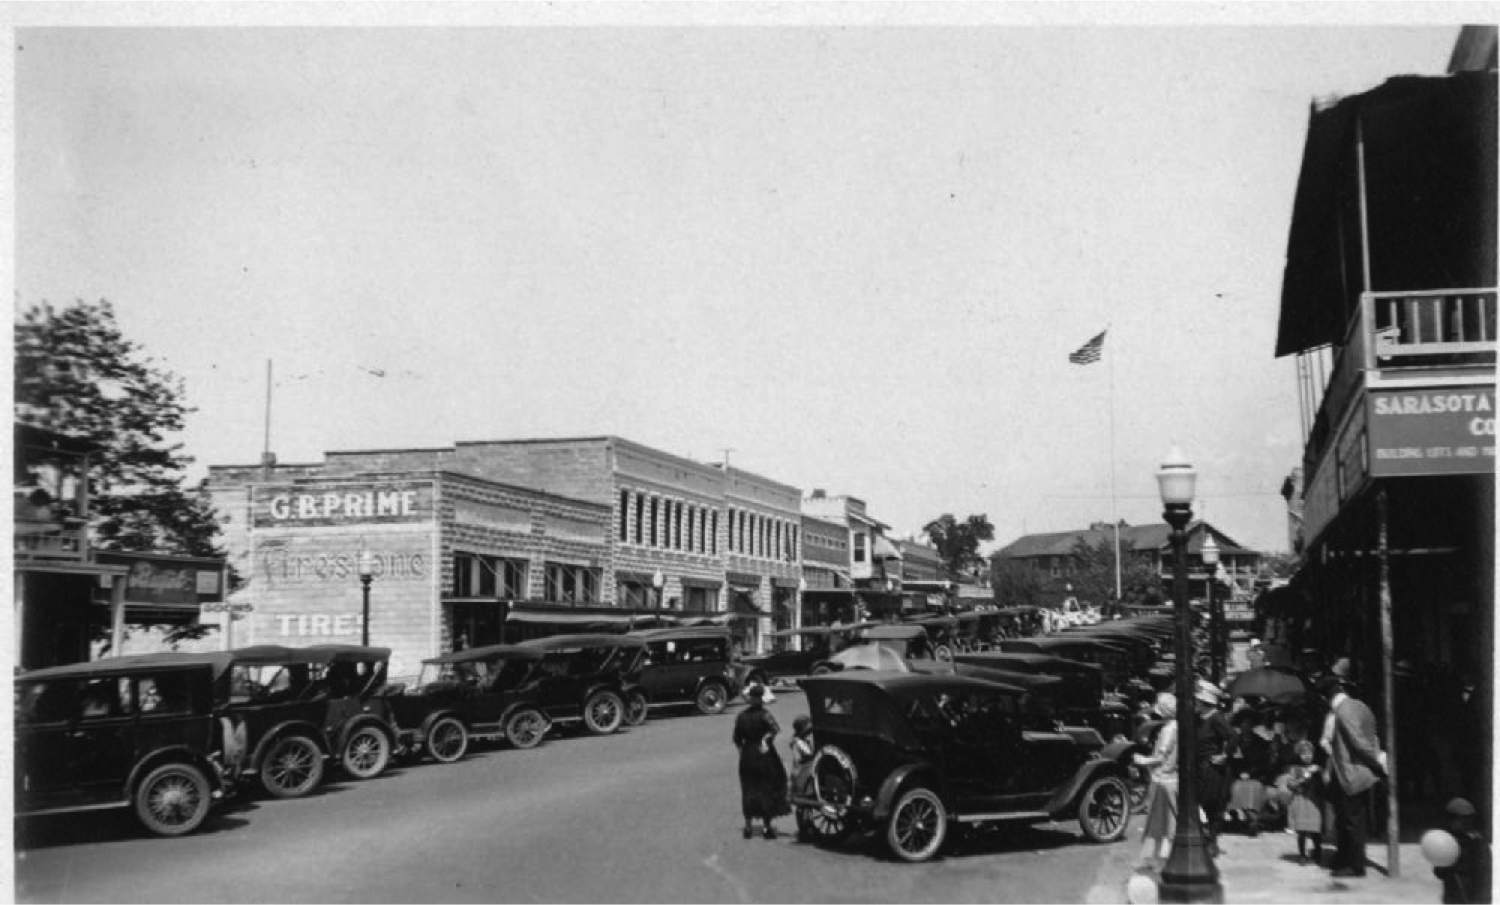 Overtown, Sarasota's first African-American neighborhood, in the 1920s.